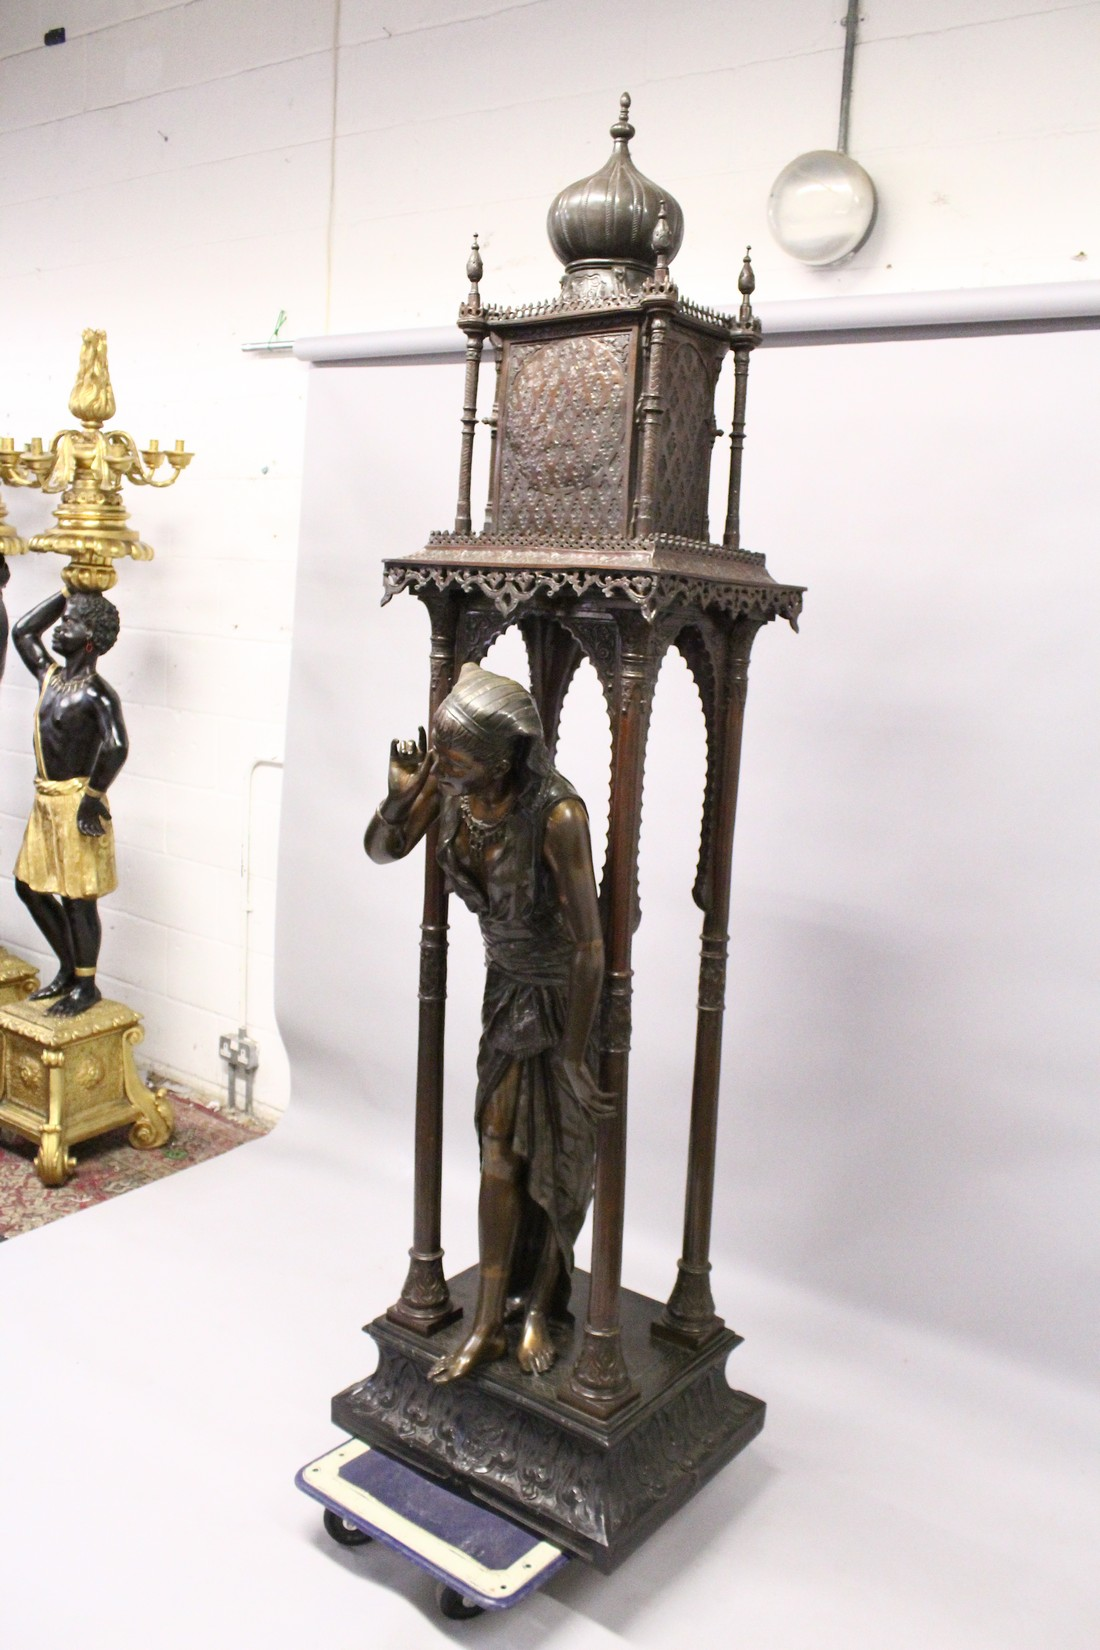 A SUPERB LARGE 19TH CENTURY FRENCH BRONZE OF AN ISLAMIC YOUNG LADY standing in an arbour with four - Image 6 of 9